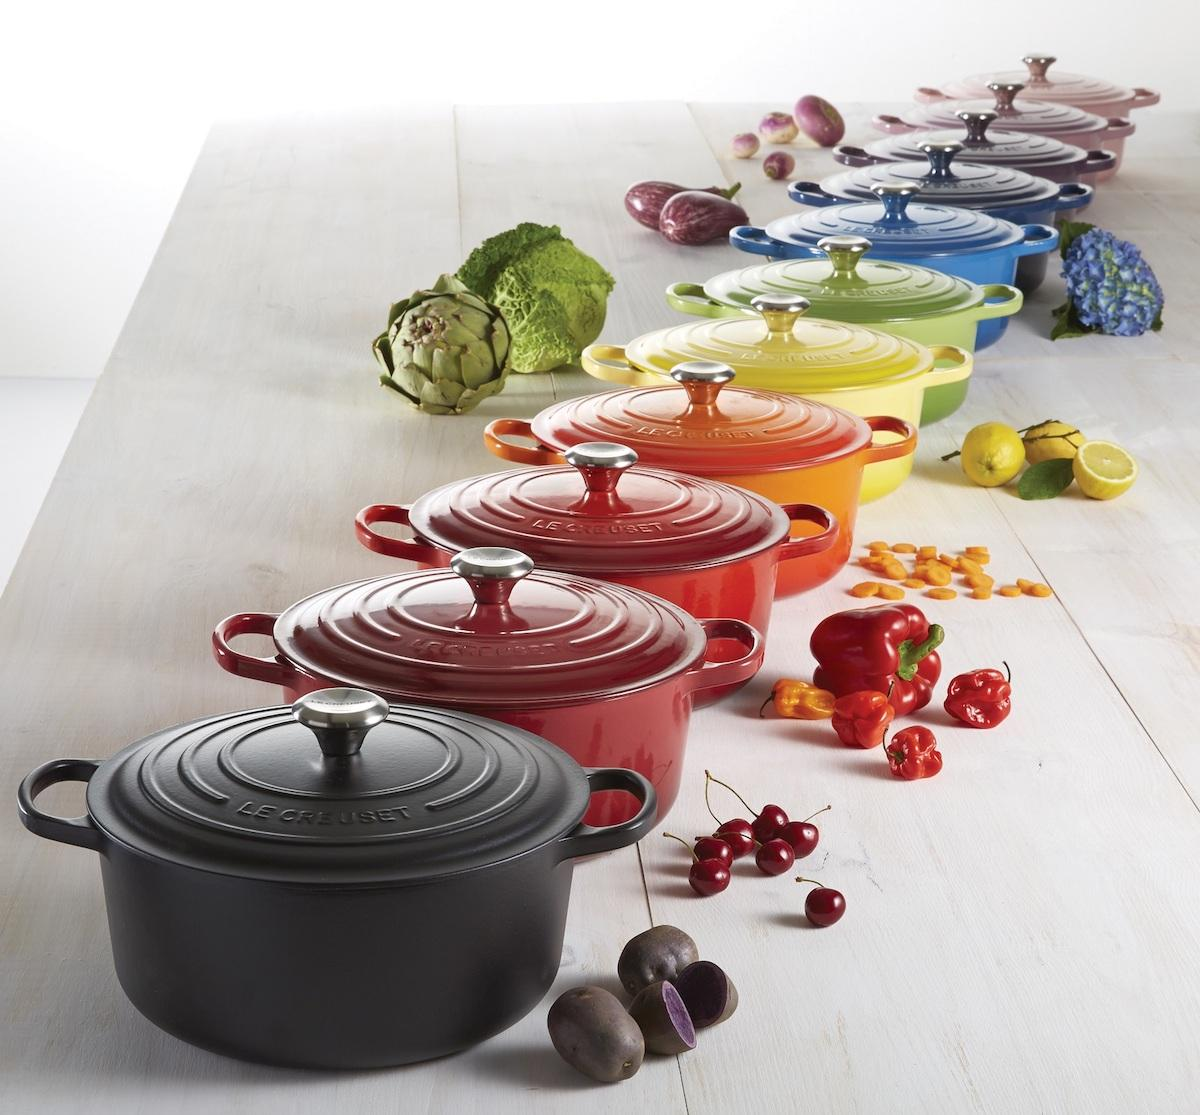 Up to $175 off Le Creuset @ Saks Fifth Avenue